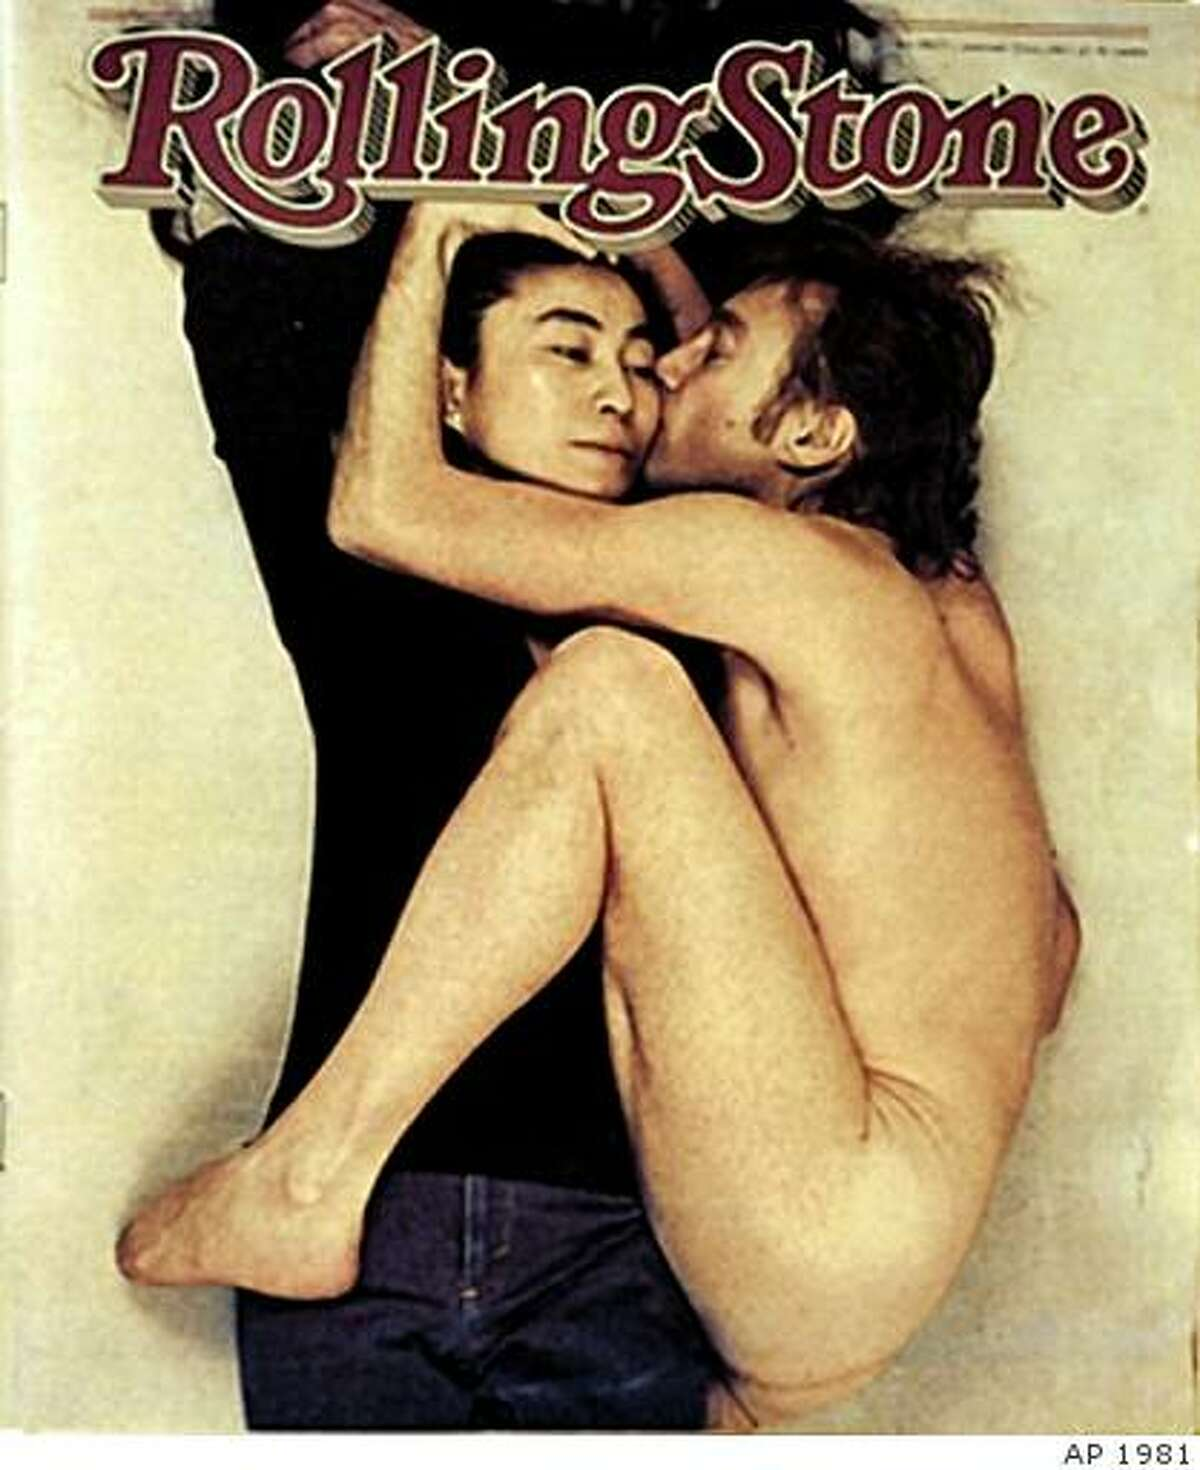 1981 Rolling Stone cover featuring John Lennon and Yoko Ono.**RETRANSMISSION FOR IMPROVED QUALITY AND INCREASED FILE SIZE**This photo supplied by the Magazine Publishers Association and American Society of Magazine Editors shows the Rolling Stone magazine cover from Jan. 22, 1981, depicting John Lennon and Yoko Ono, which was voted the number one cover from the last 40 years, as decided by judges in a contest by the American Society of Magazine Editors, the group announced Monday, Oct. 17, 2005. The photo was taken by photographer Annie Liebovitz in December 1980 on the last day of Lennon's life. (AP Photo/Magazine Publishers Assn and American Society of Magazine Editors)